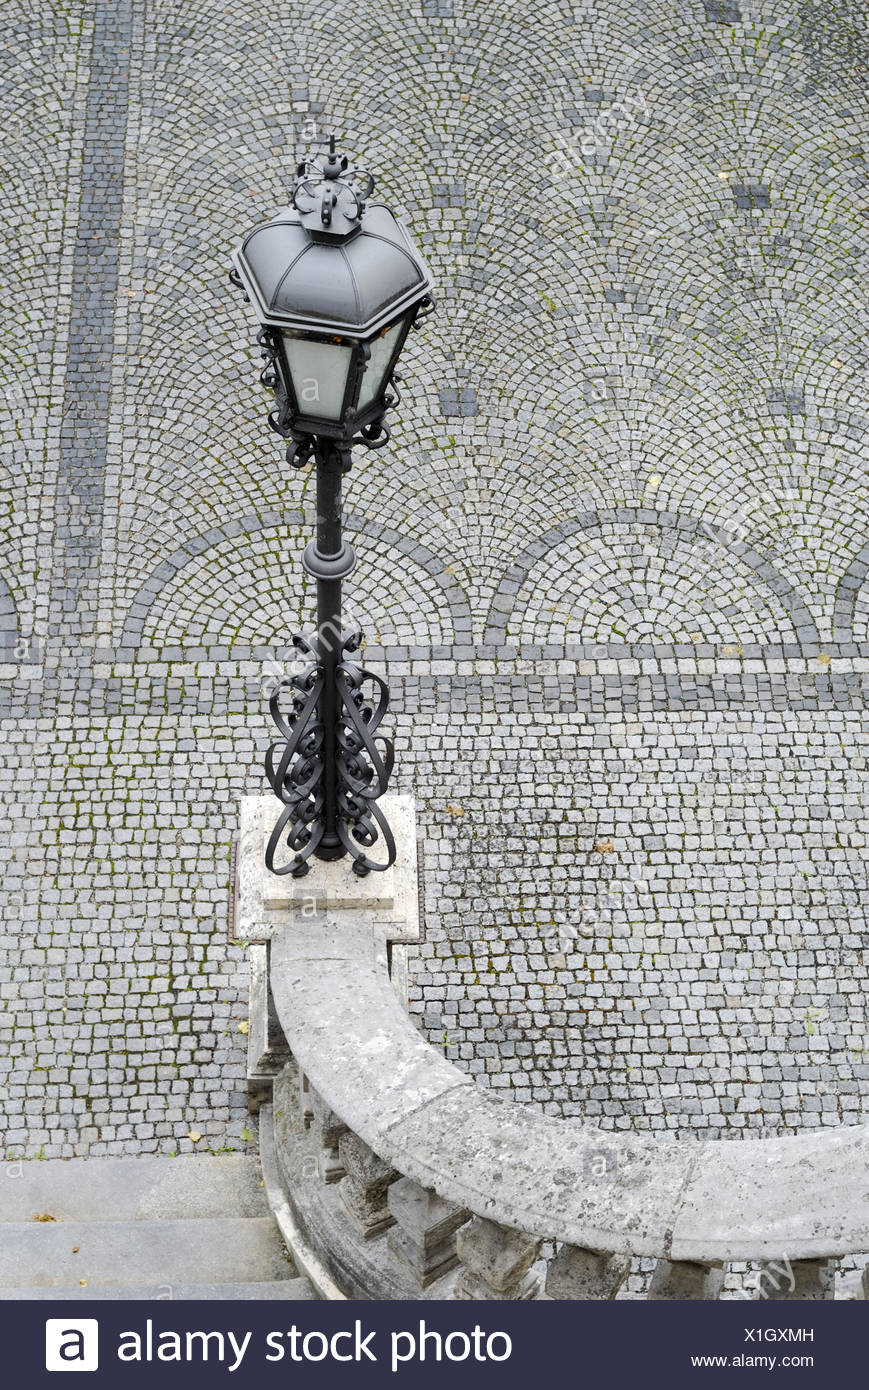 Lanterne, pôle de lumière, escaliers, marches, main courante, pavement, gris, Photo Stock